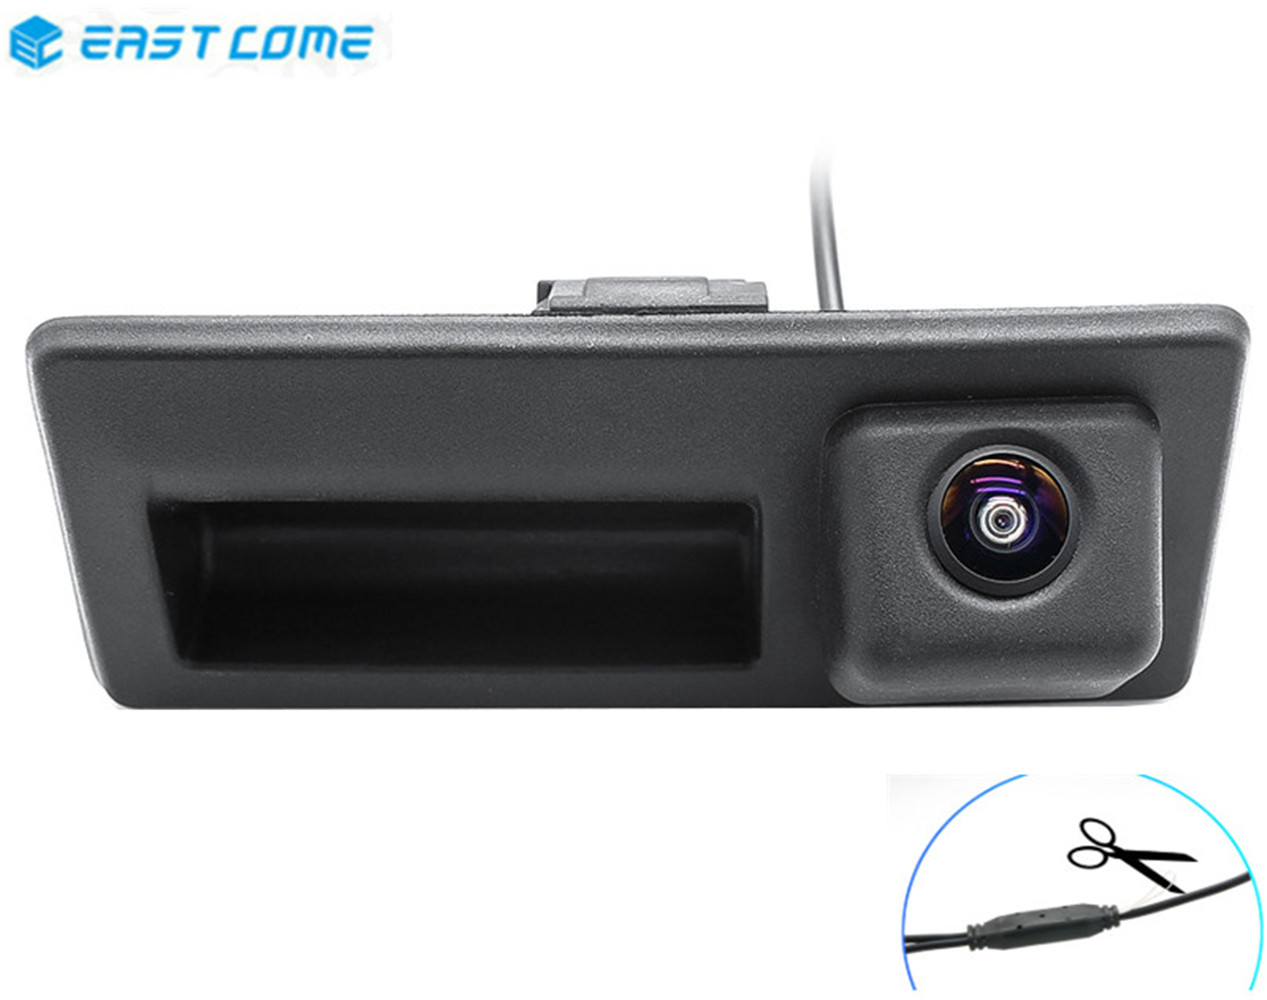 Reverse <font><b>Camera</b></font> 1080P Trunk Handle Car Rear View For Volkswagen Passat Caddy MK3 Golf Poal Golf plus <font><b>Audi</b></font> A4 <font><b>A6</b></font> Car <font><b>Camera</b></font> image